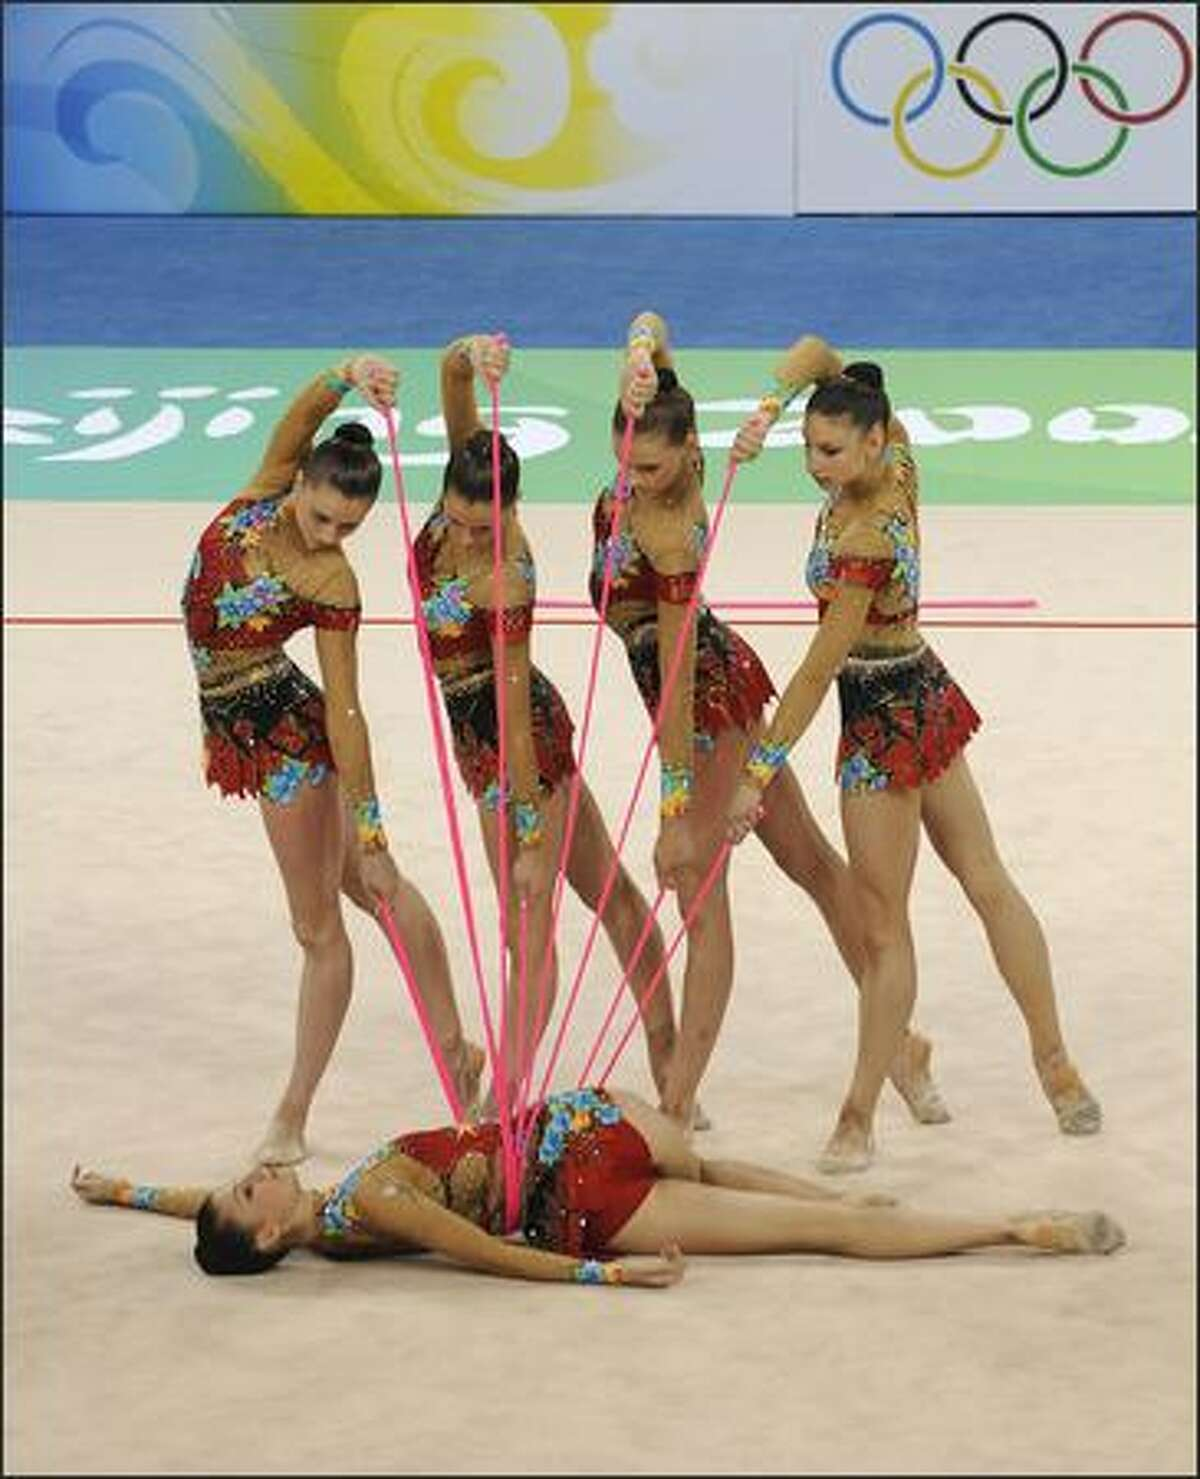 The team of Belarus competes in the group all-around qualification of the rhythmic gymnastics at the Beijing 2008 Olympic Games in Beijing on August 21, 2008.